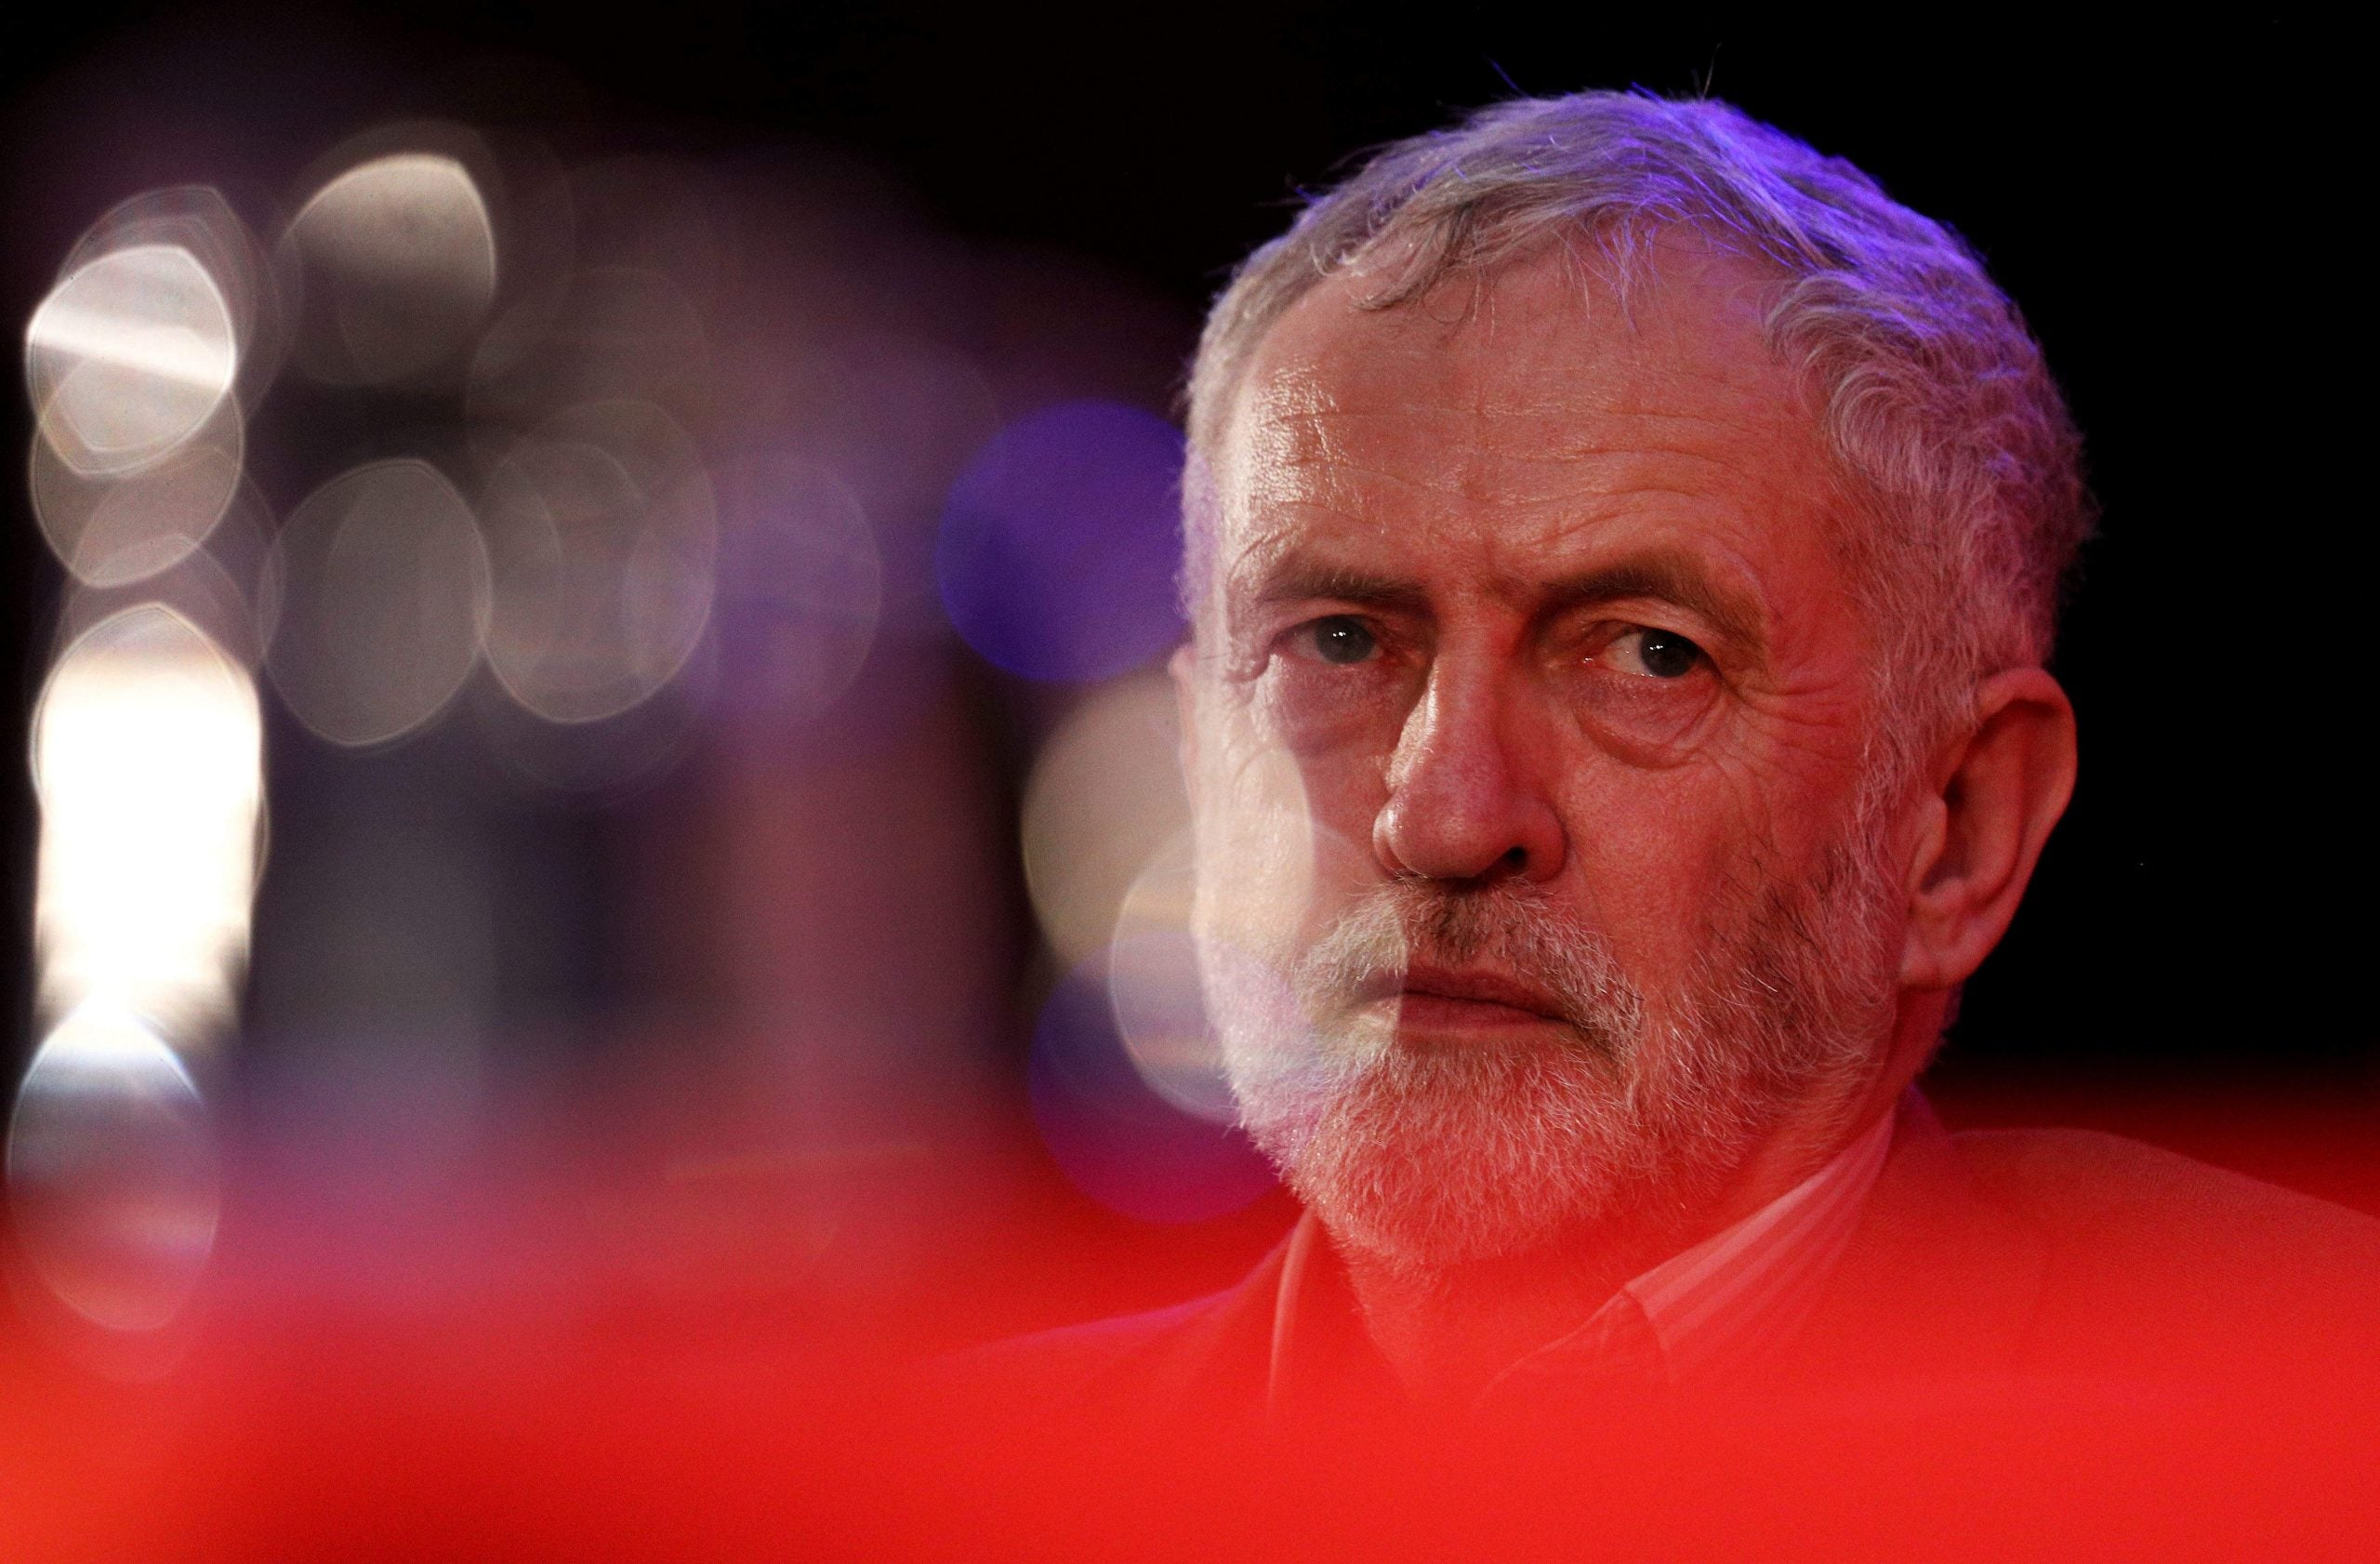 Will Self: I was no fan of New Labour – but Brexit requires original thinking Corbyn can't provide